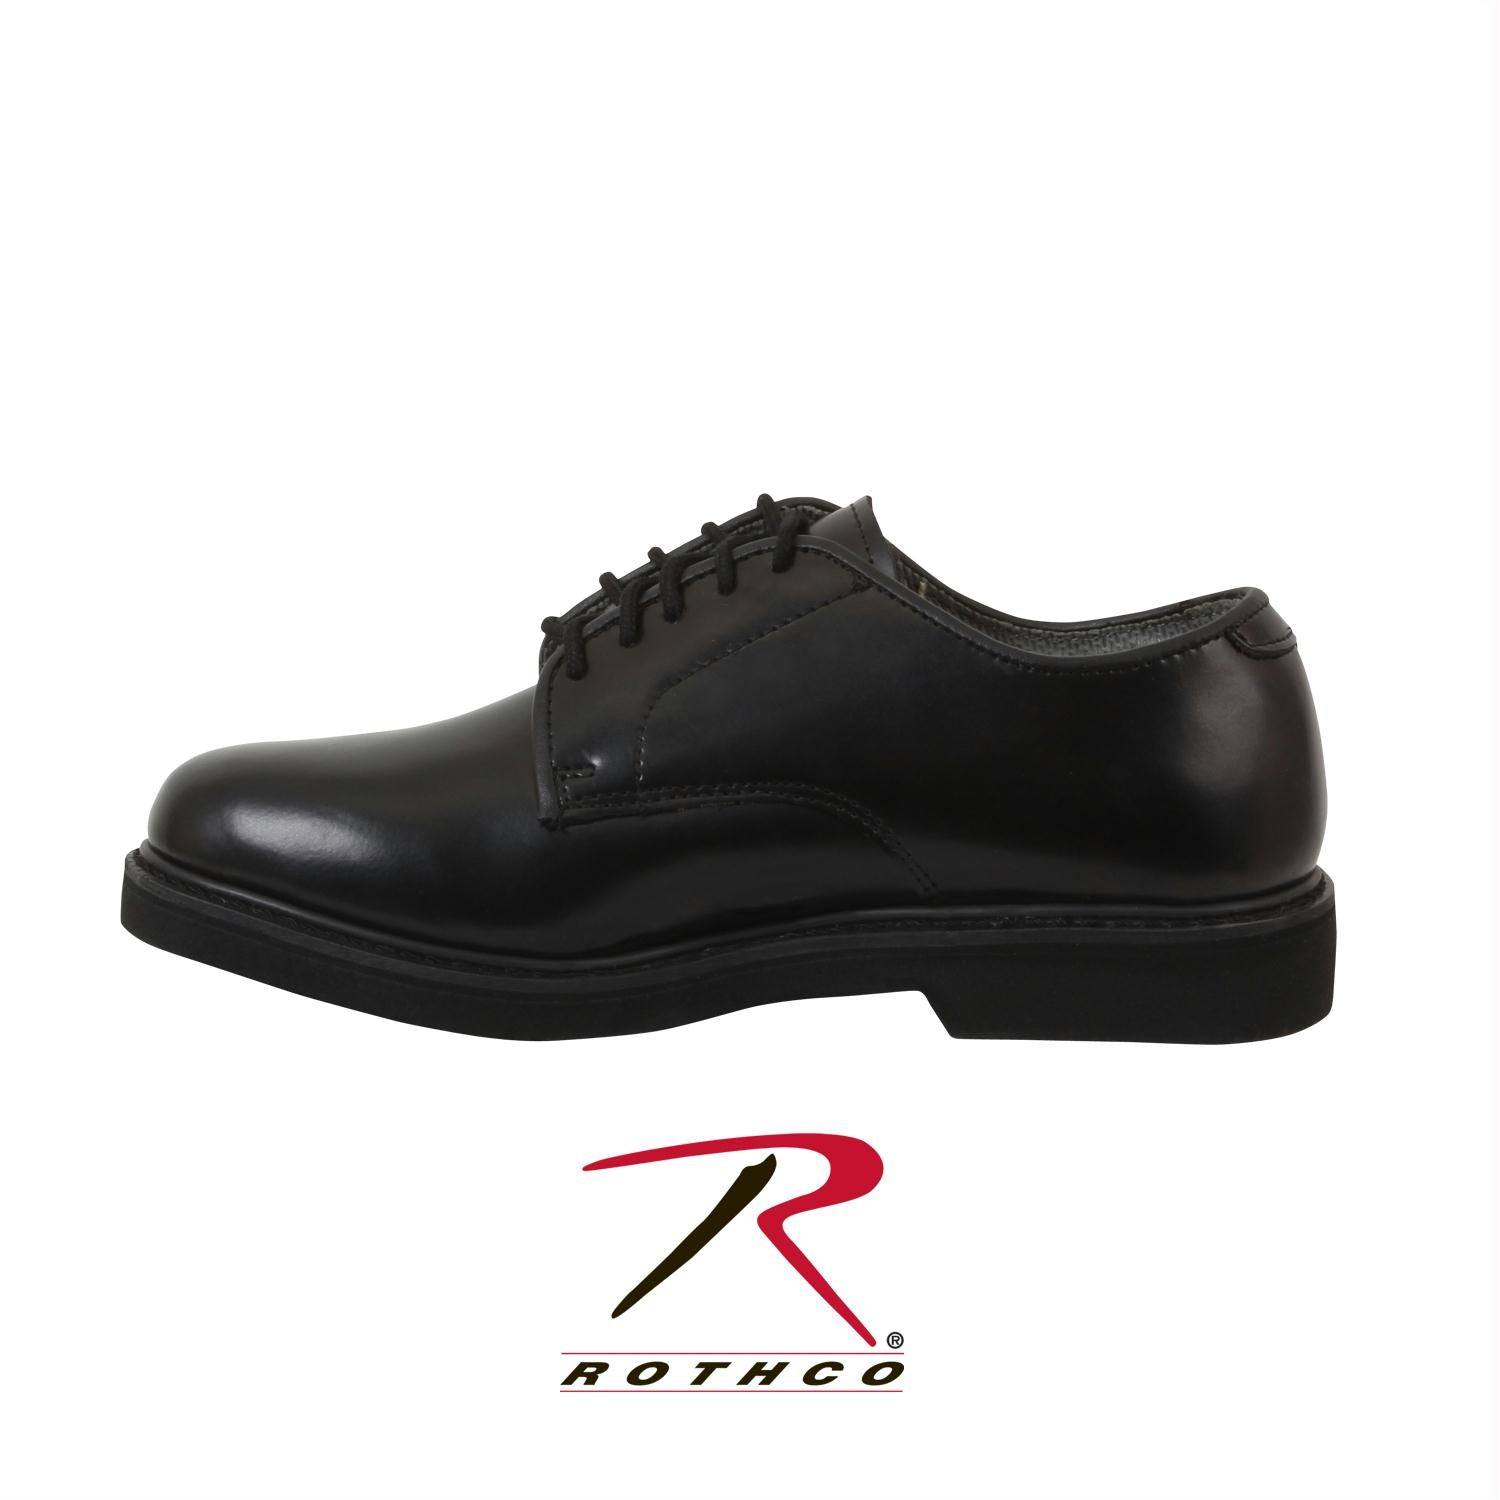 Rothco Military Uniform Oxford Leather Shoes - 7.5 / Wide